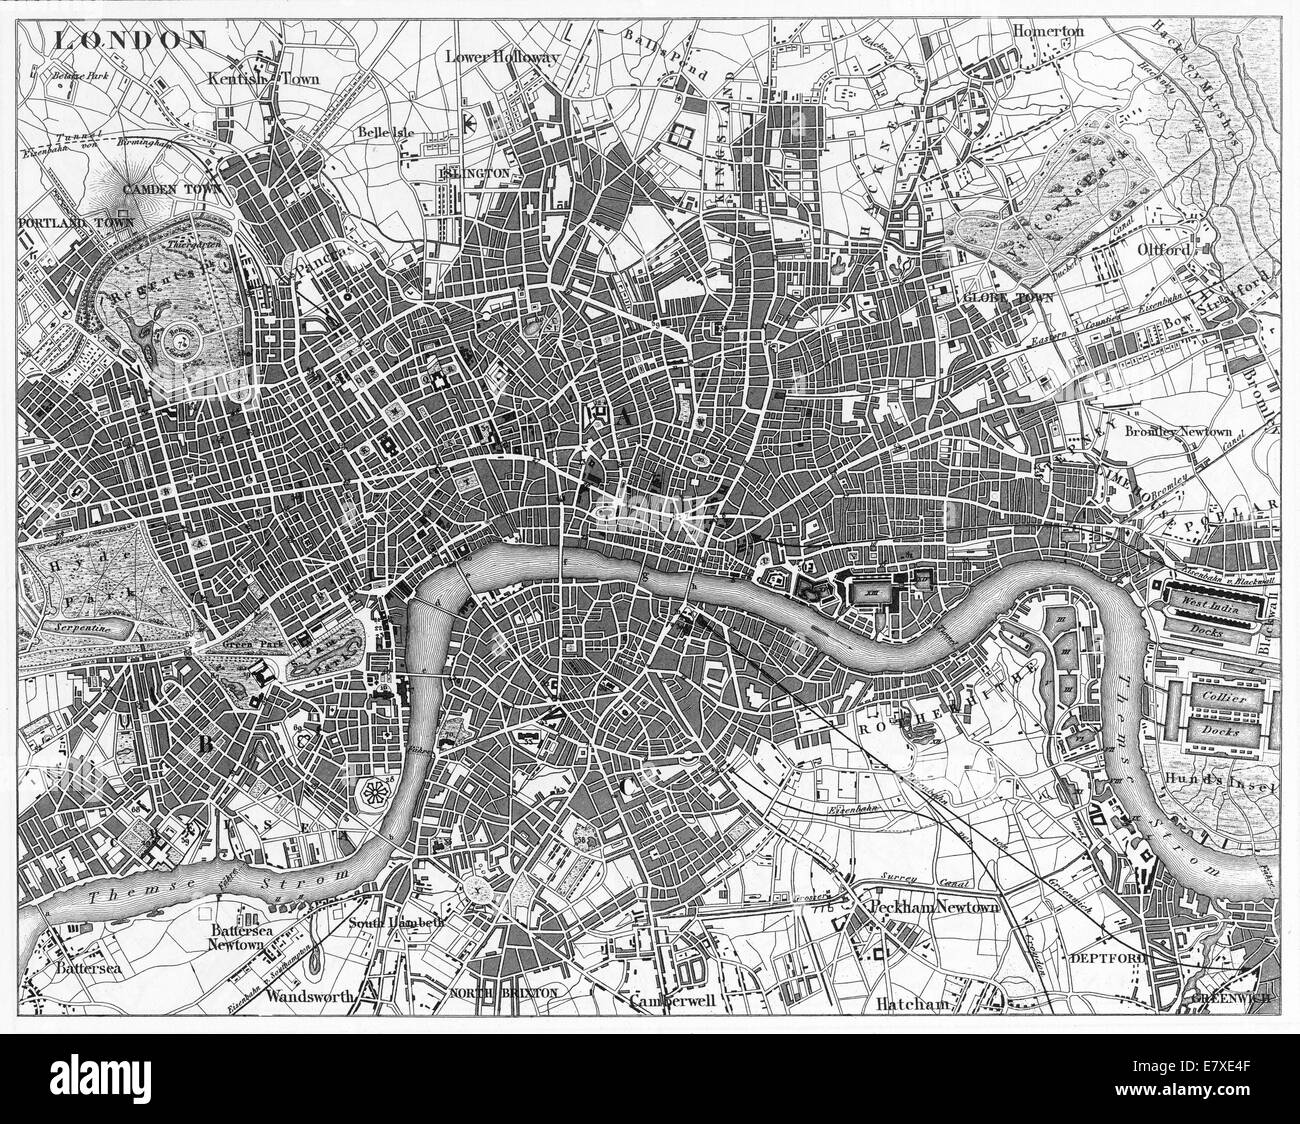 Engraved illustrations of the Map of London, England from Iconographic Encyclopedia of Science, Literature and Art, - Stock Image